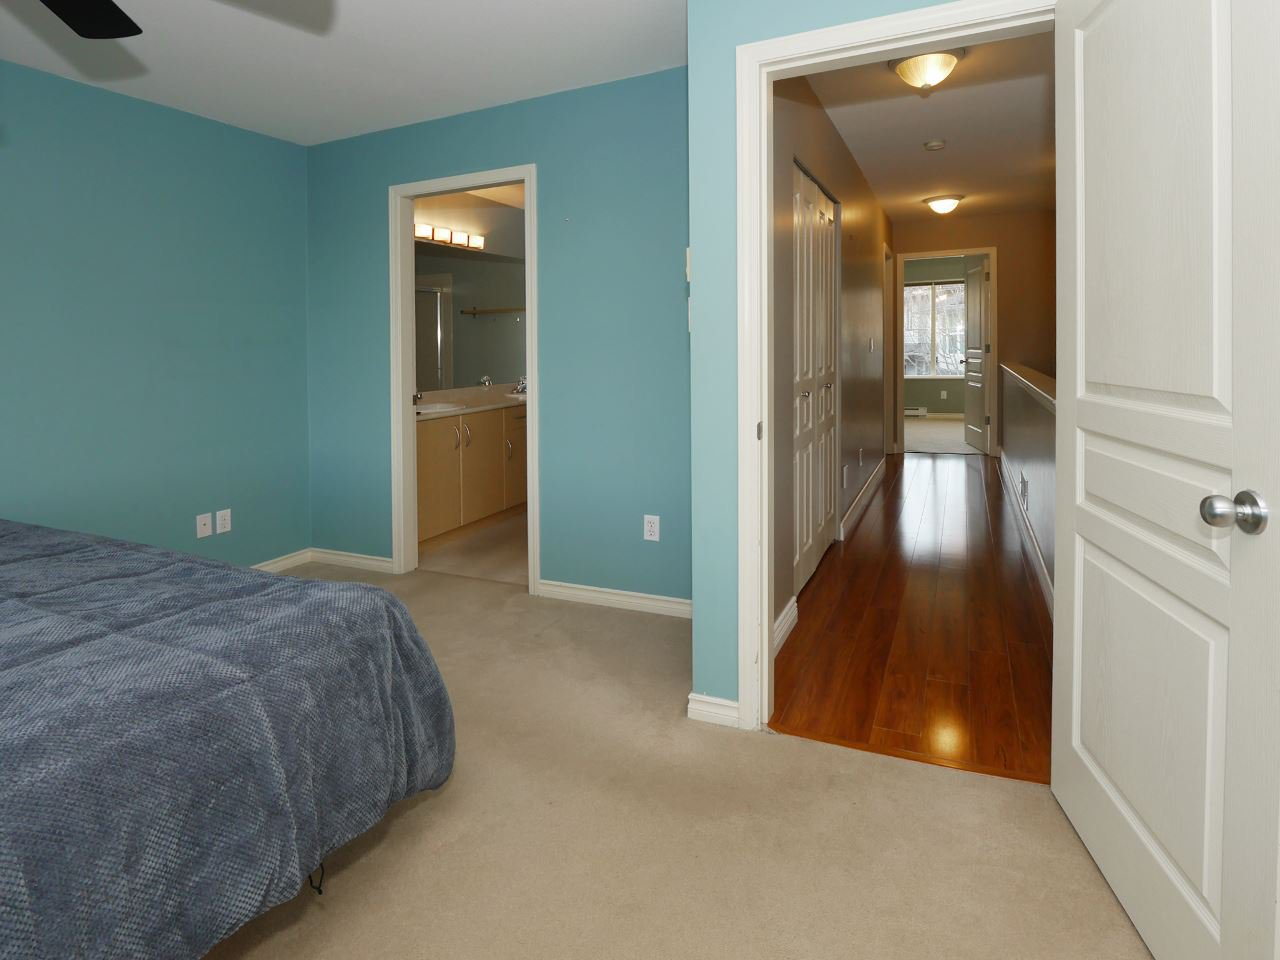 """Photo 12: Photos: 27 14952 58 Avenue in Surrey: Sullivan Station Townhouse for sale in """"HIGHBRAE"""" : MLS®# R2440469"""